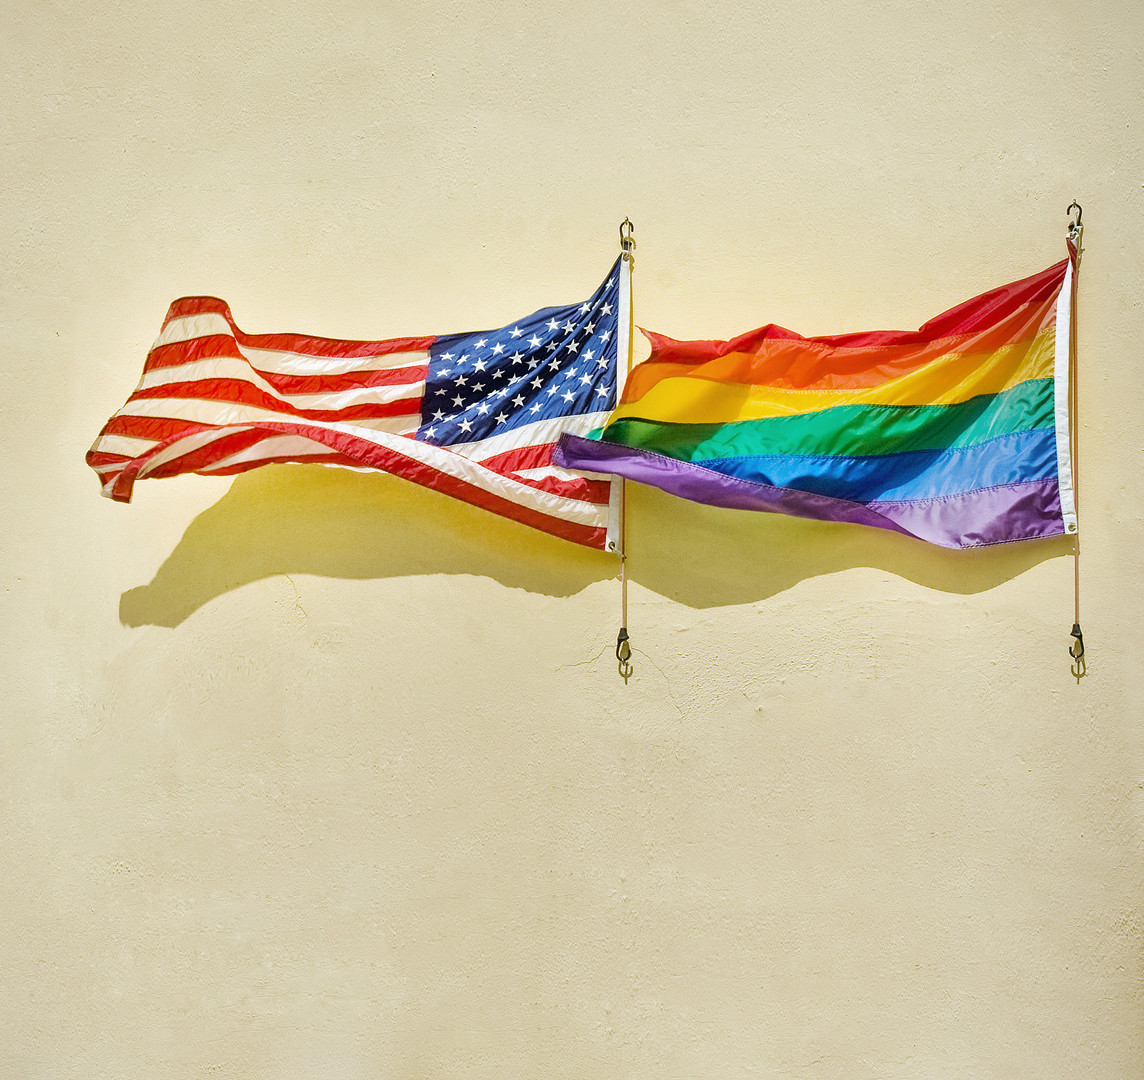 American and rainbow flags waving